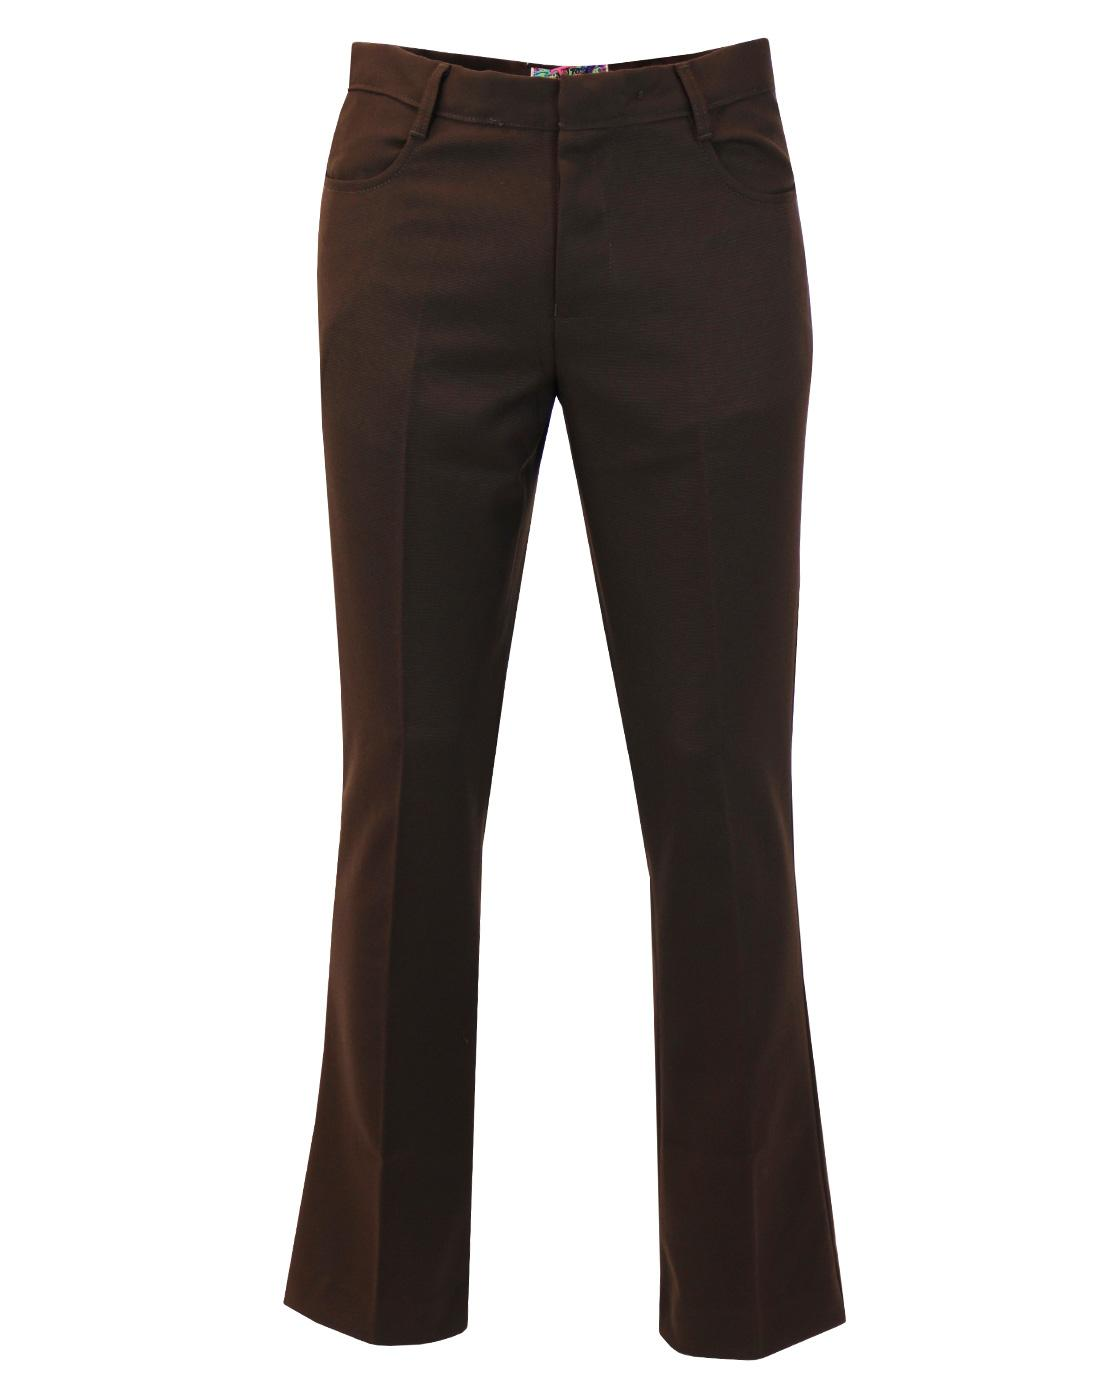 Logan Bootcut MADCAP ENGLAND Hopsack Trousers (Br)